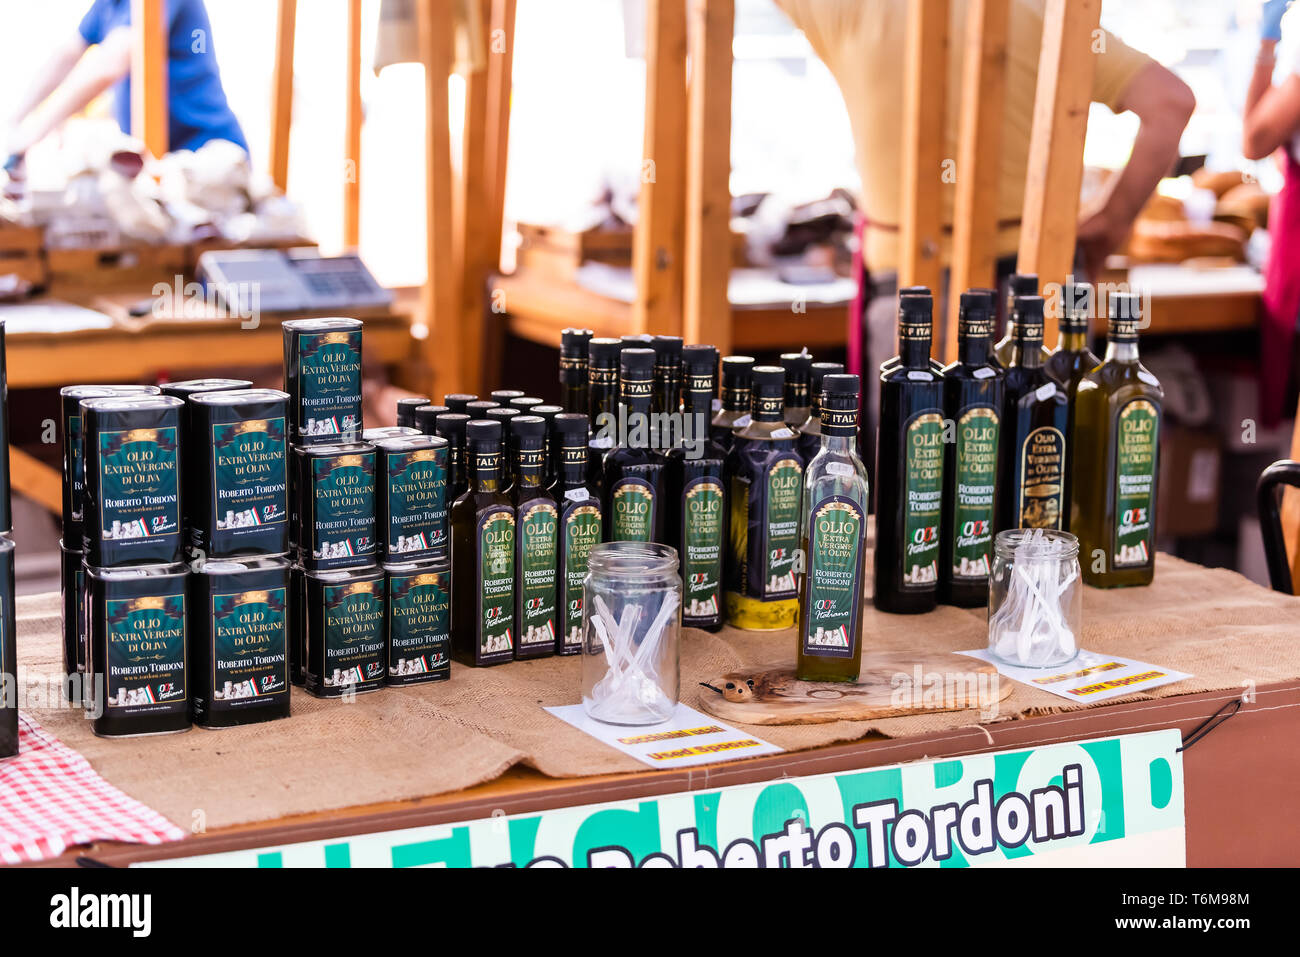 Oil Store Stock Photos & Oil Store Stock Images - Alamy